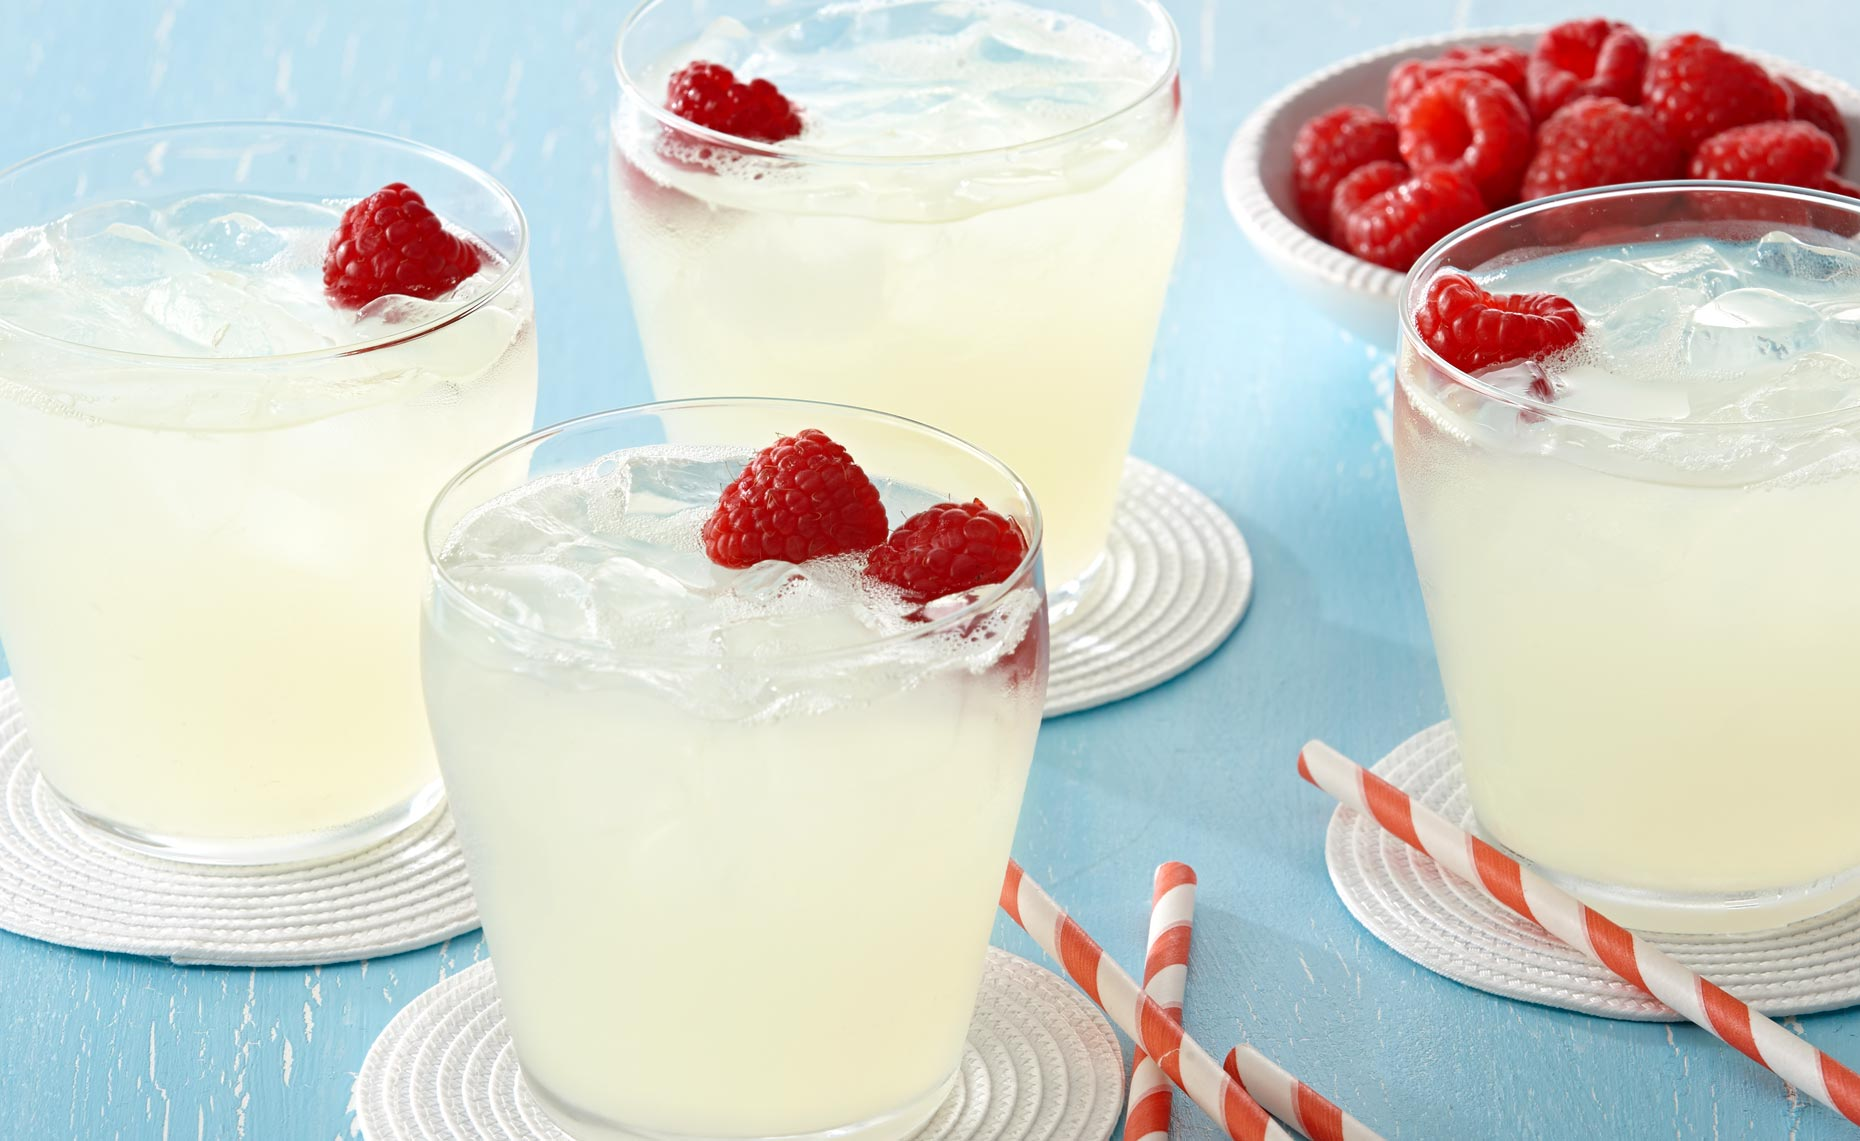 beverage-pour-splash-photographers-lemonade-raspberries-15